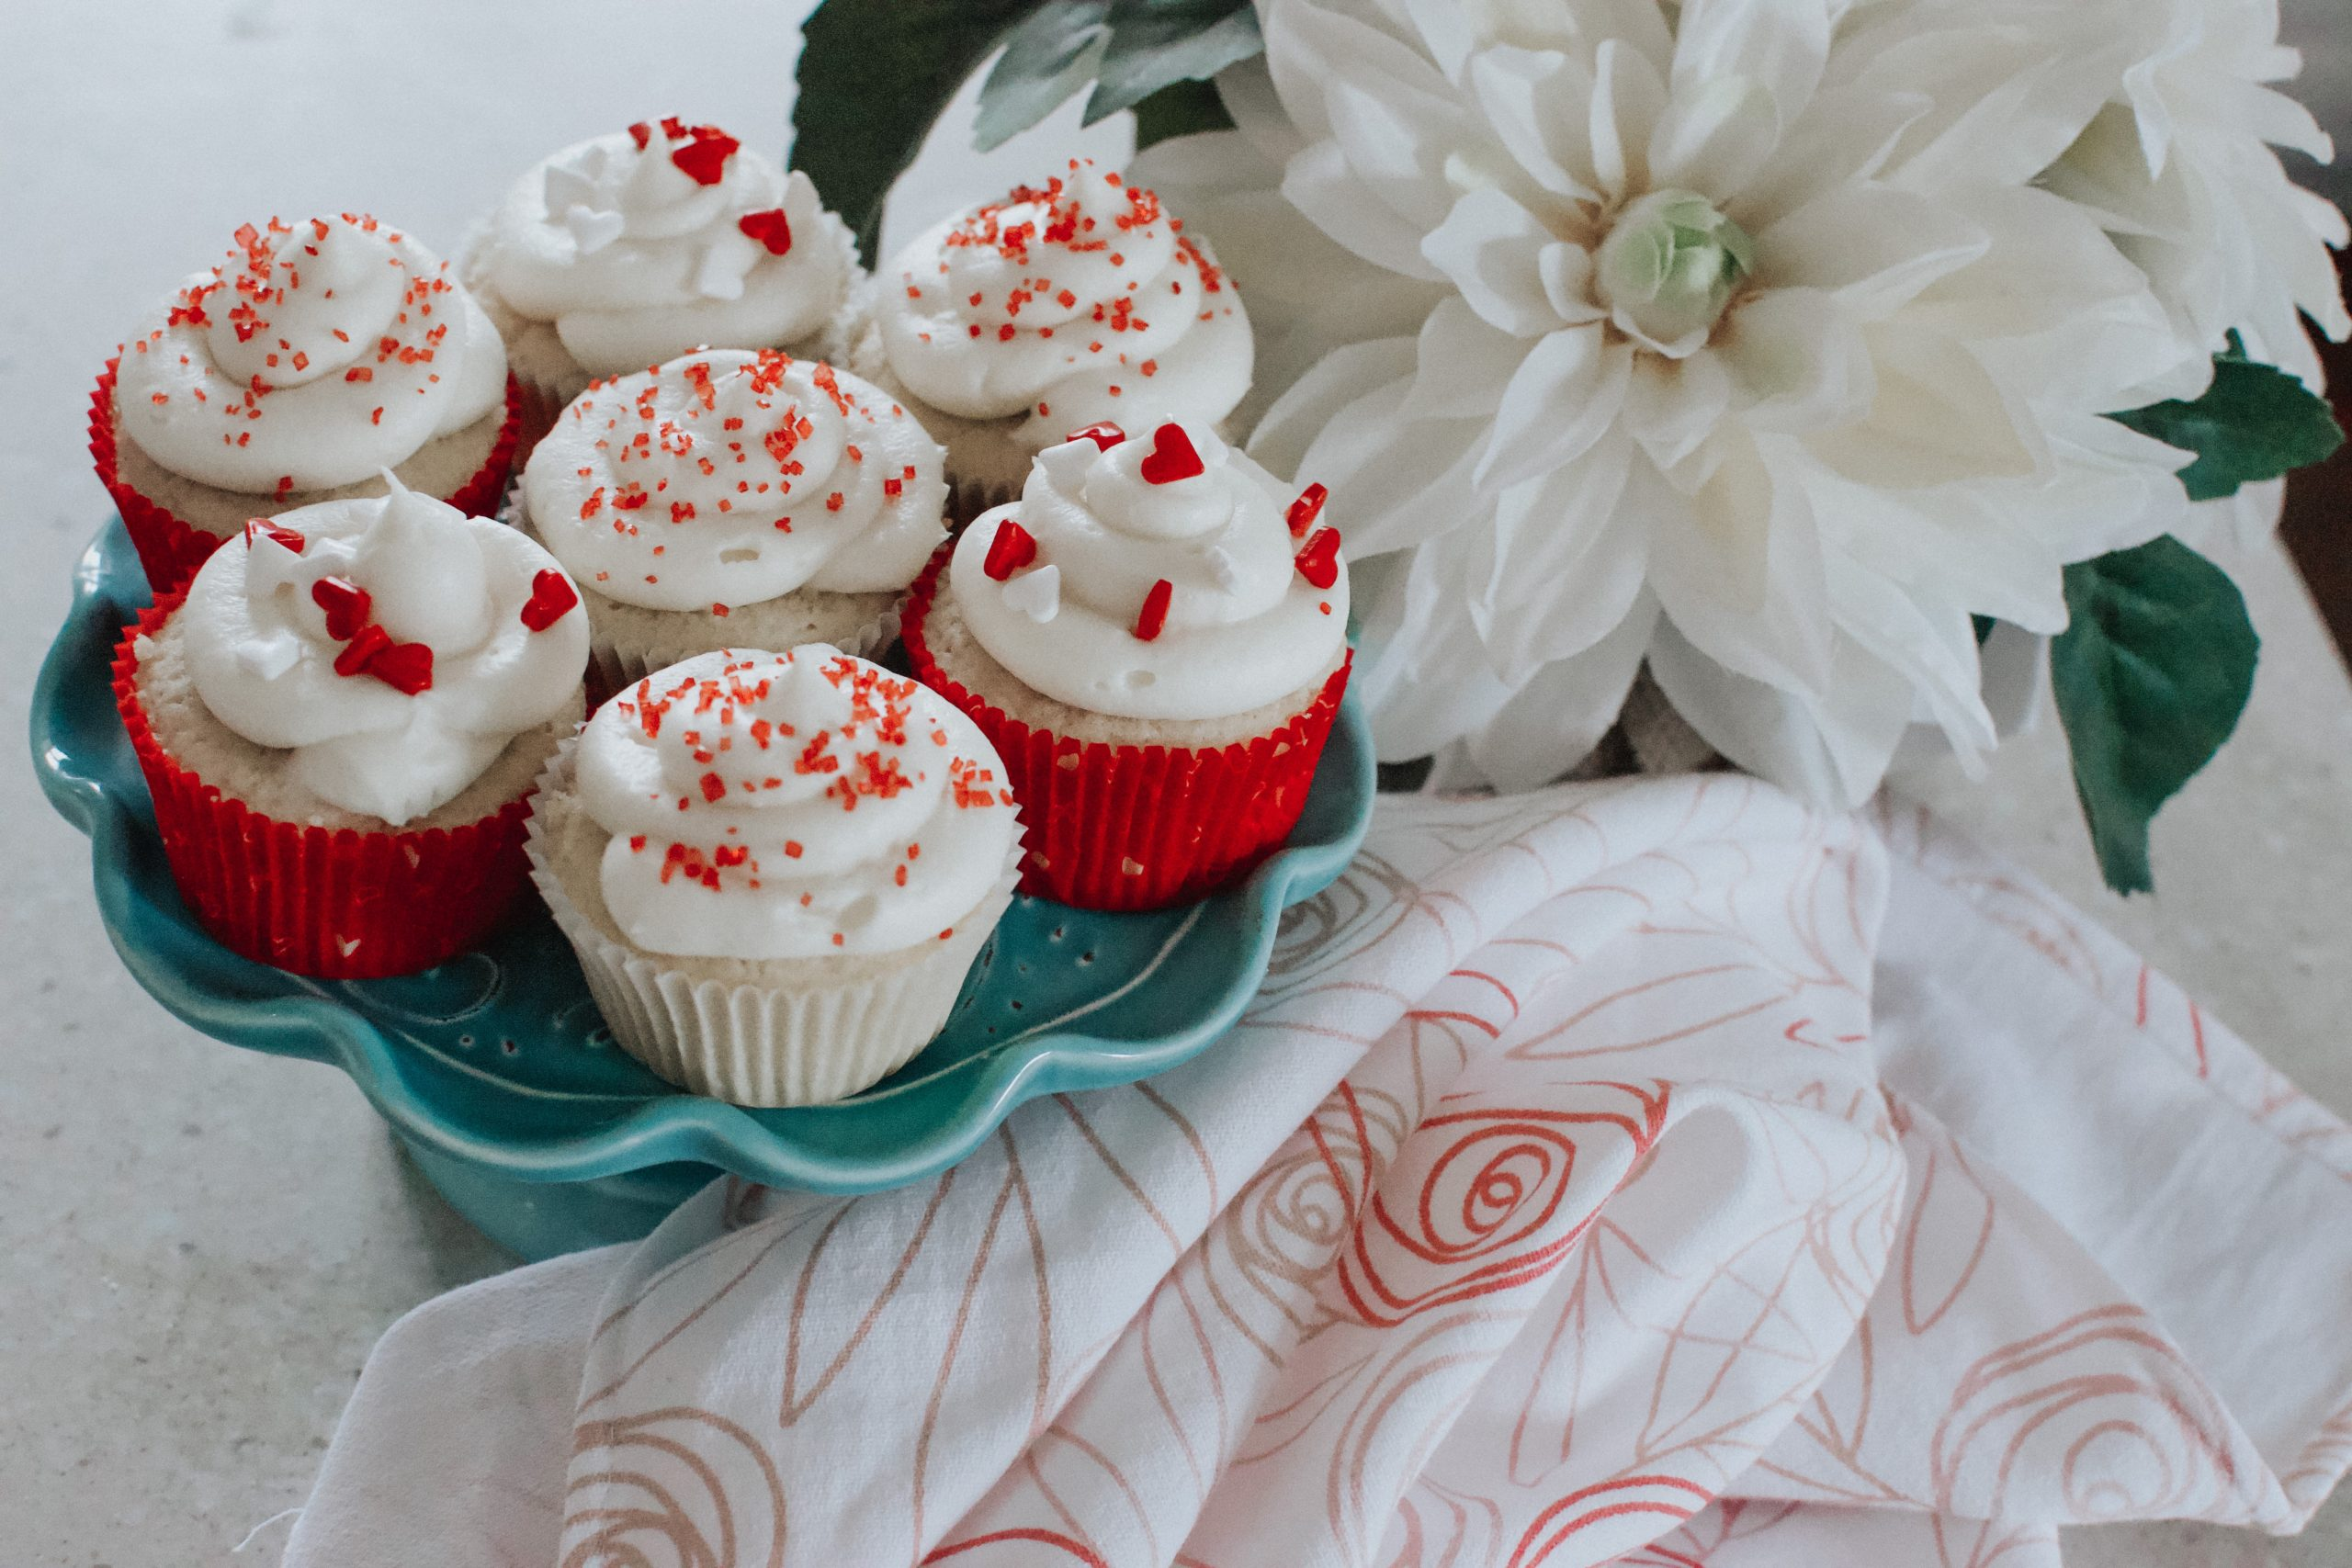 Raspberry filled cupcakes with cream cheese frosting